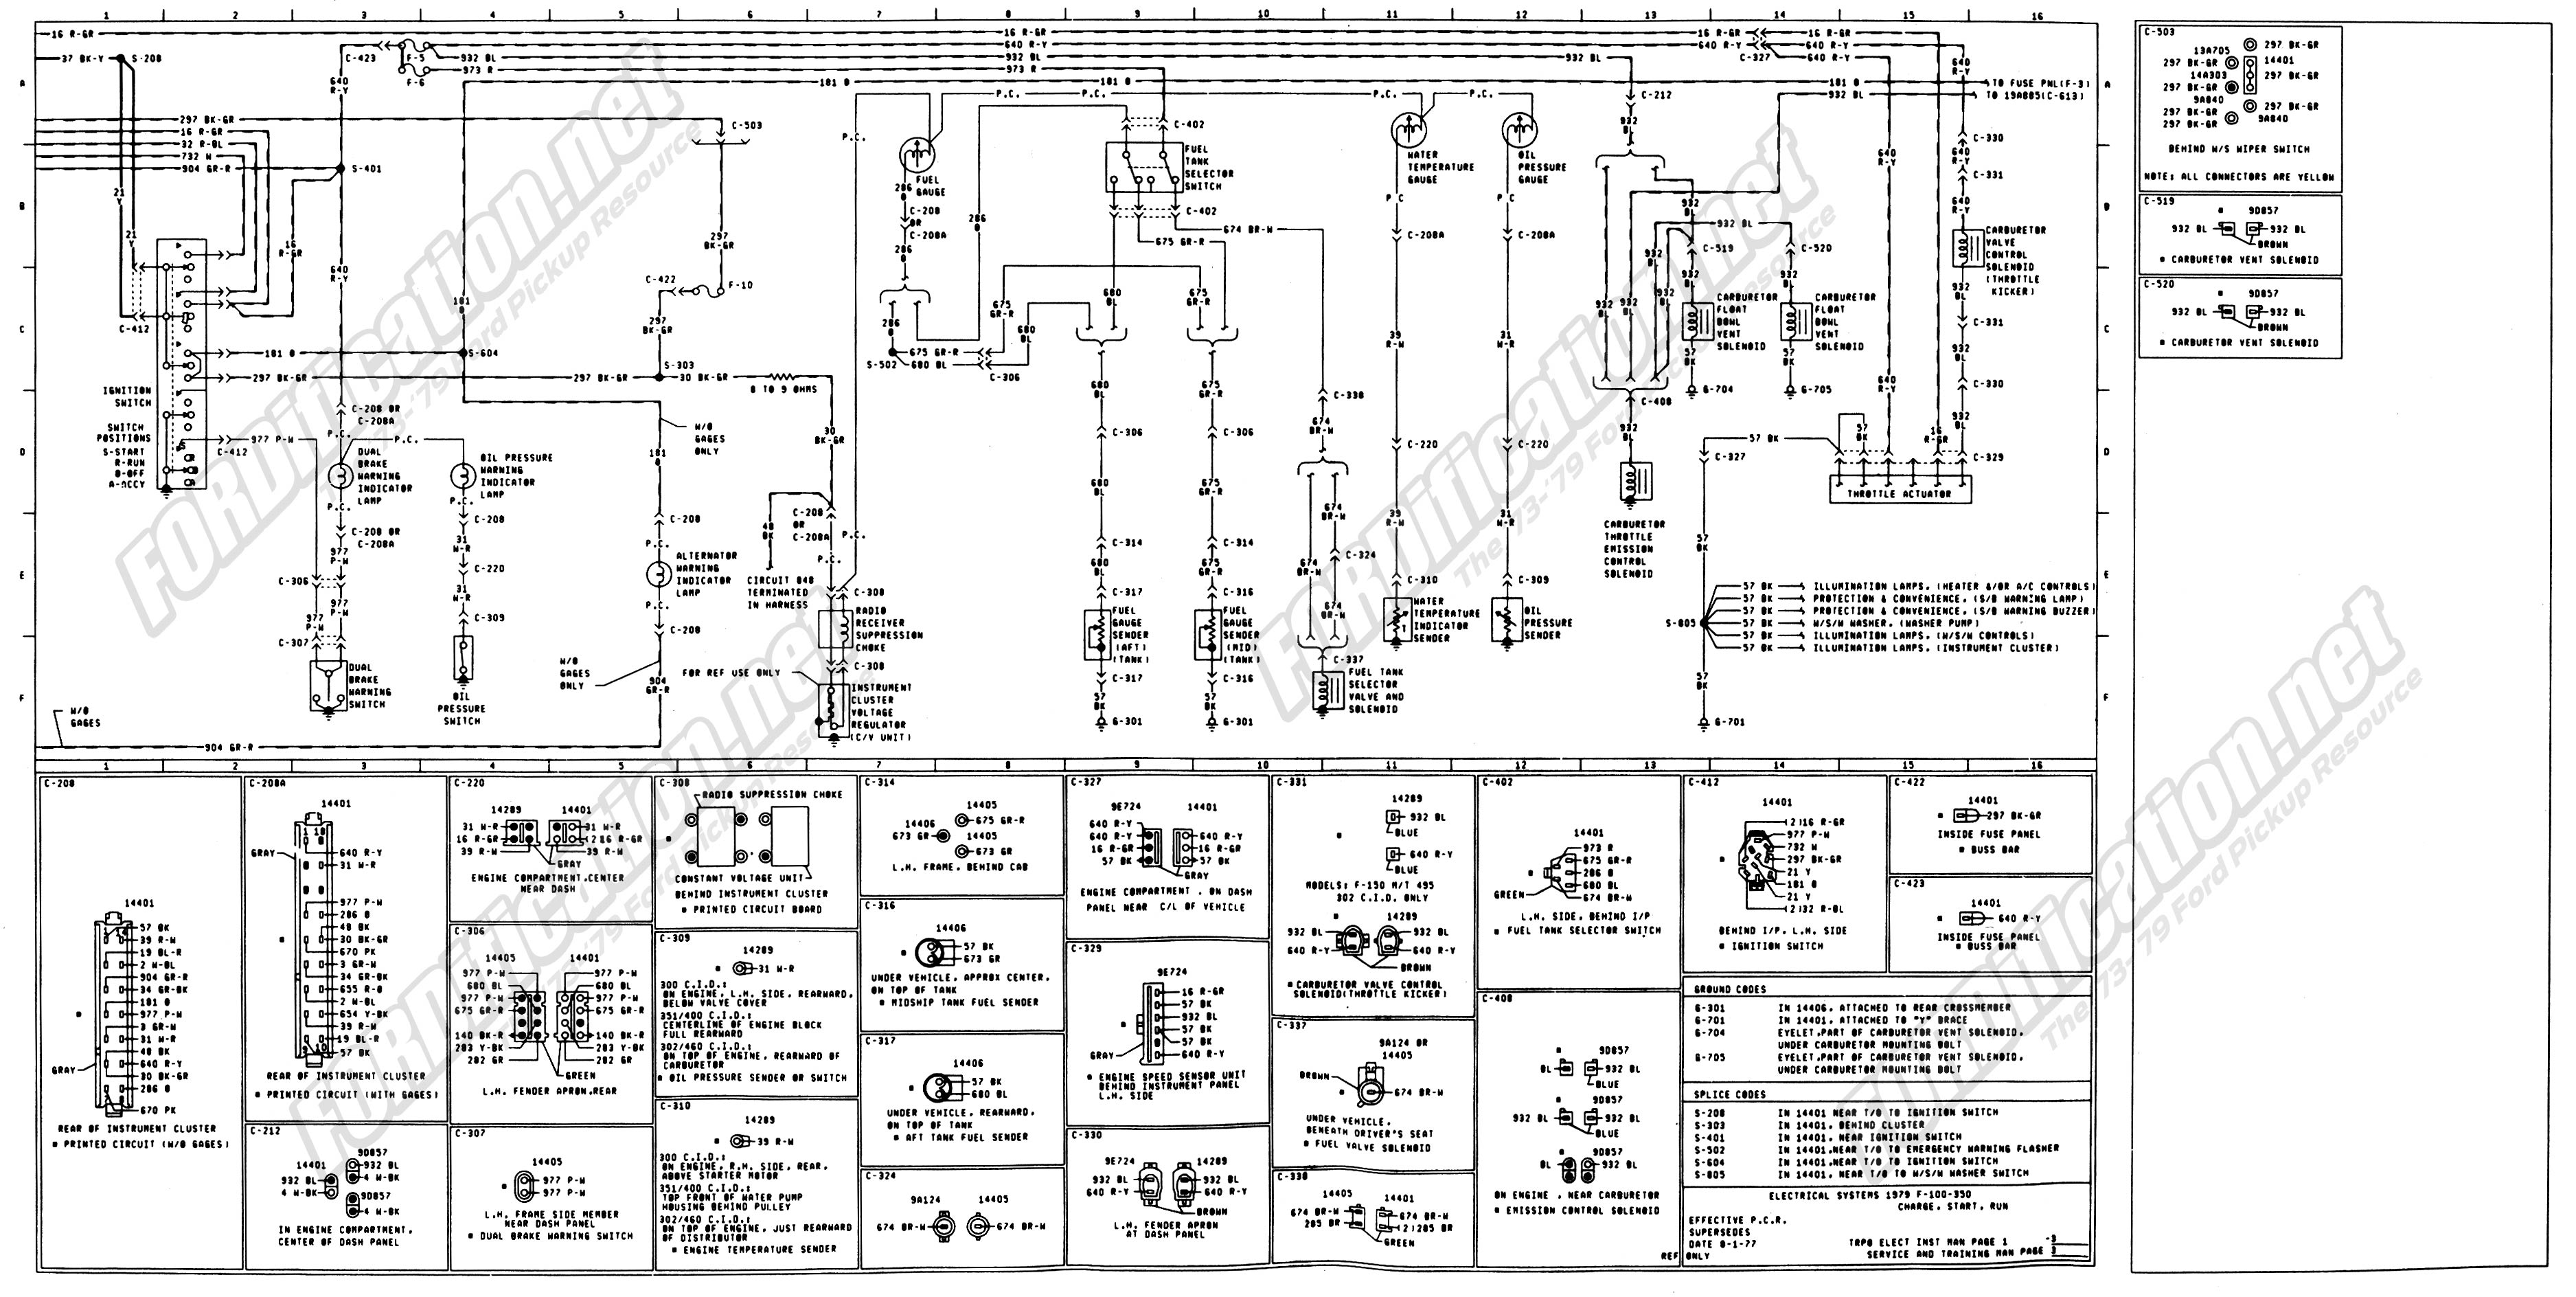 wiring_79master_3of9 1973 1979 ford truck wiring diagrams & schematics fordification net 2000 ford f150 ignition wiring diagram at honlapkeszites.co